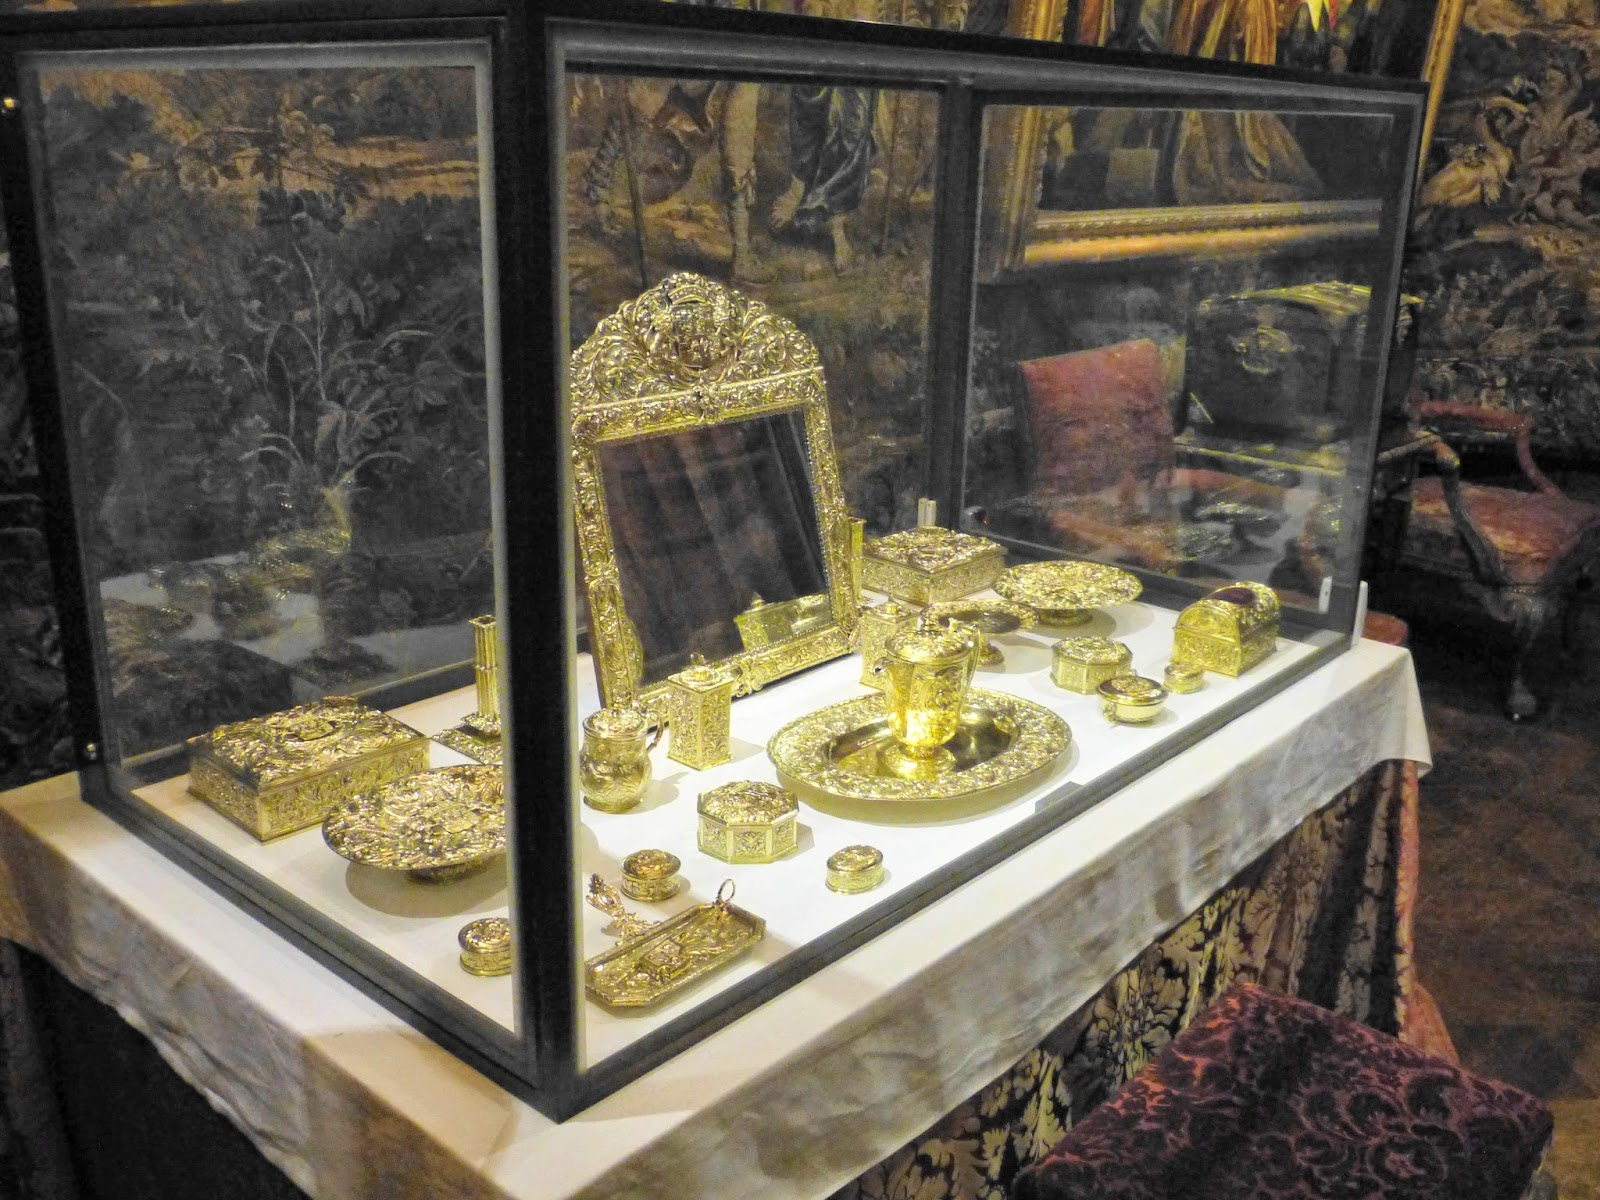 Silver gilt toilet set in State Bedroom, Chatsworth